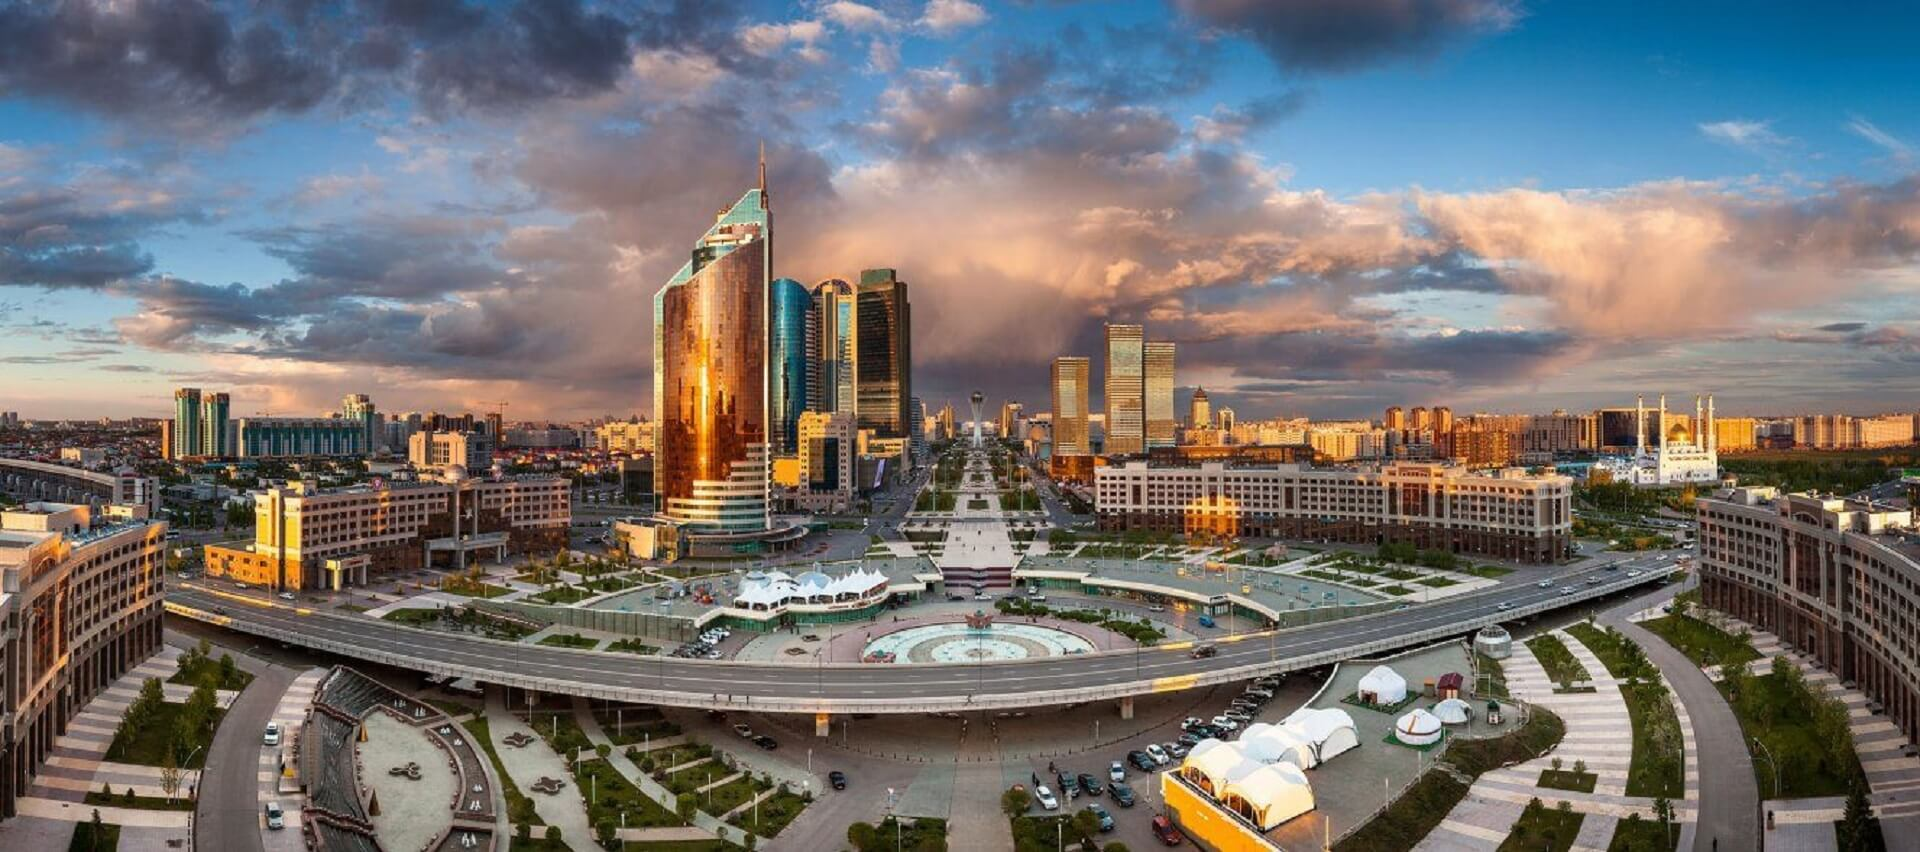 Astana City Tour: excursion in a Capital of Kazakhstan